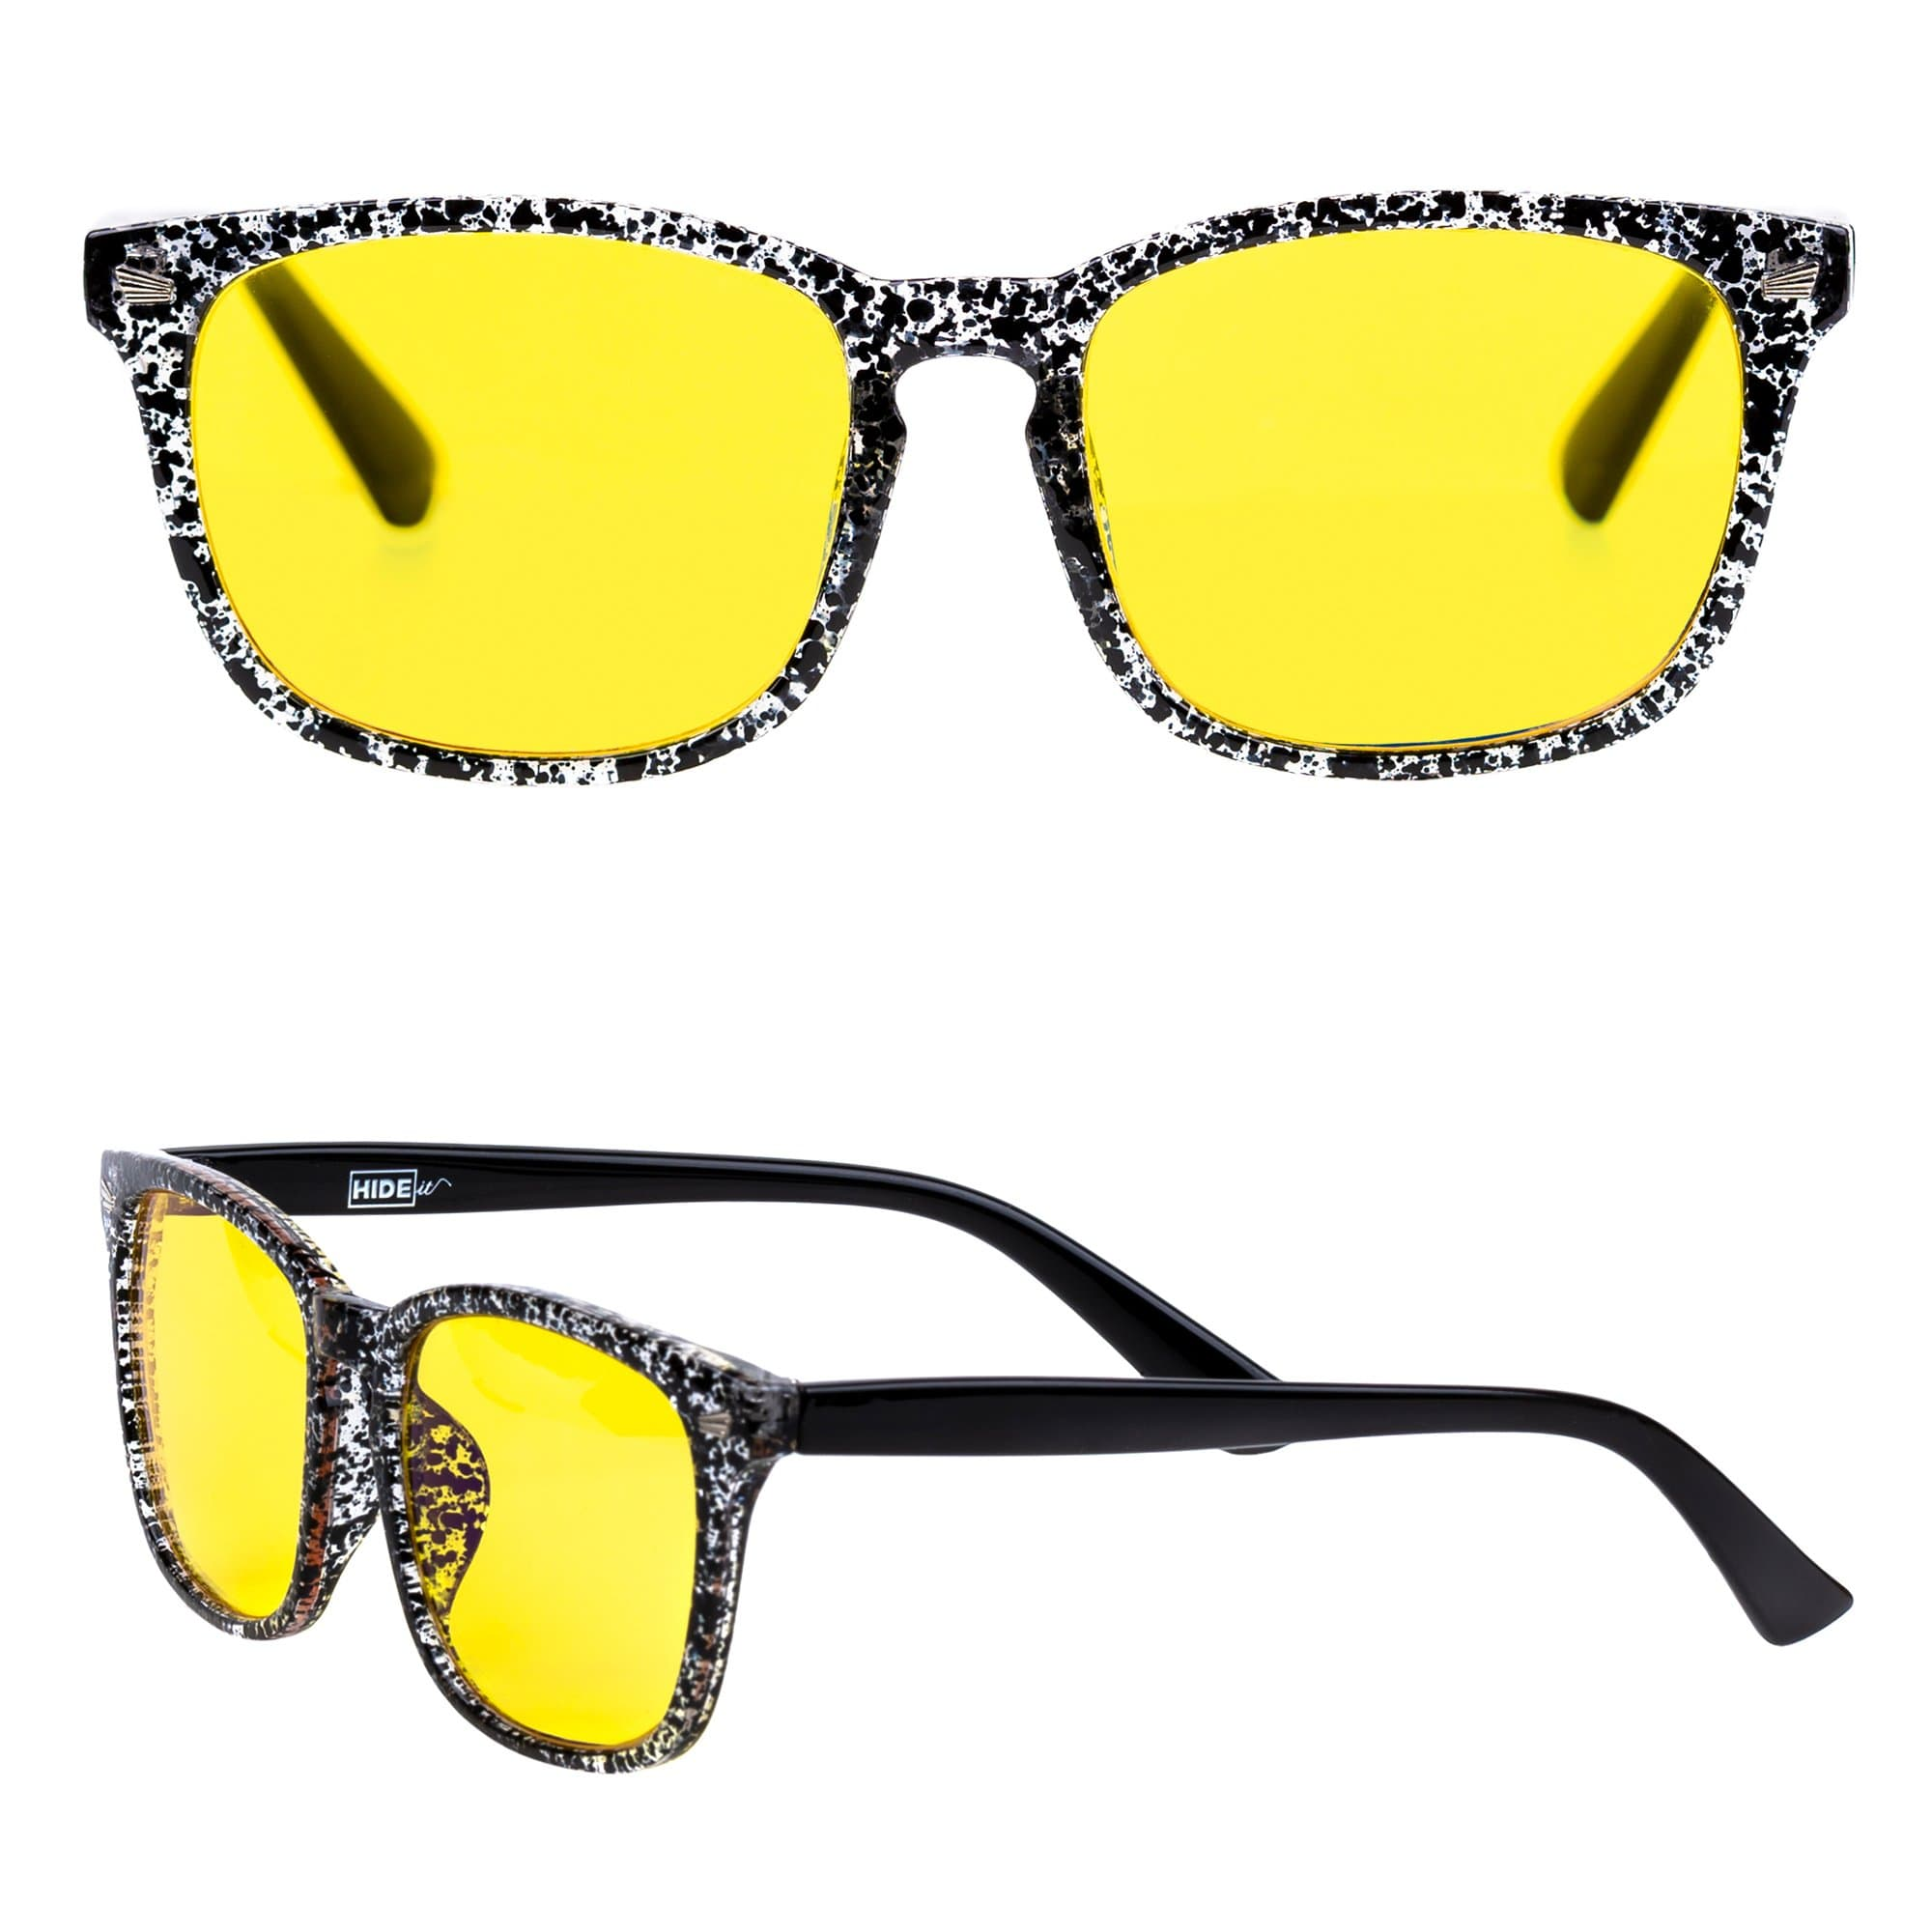 Speckle and yellow lens glasses for blocking blue light from electronics screens, made by HIDEit Mounts.